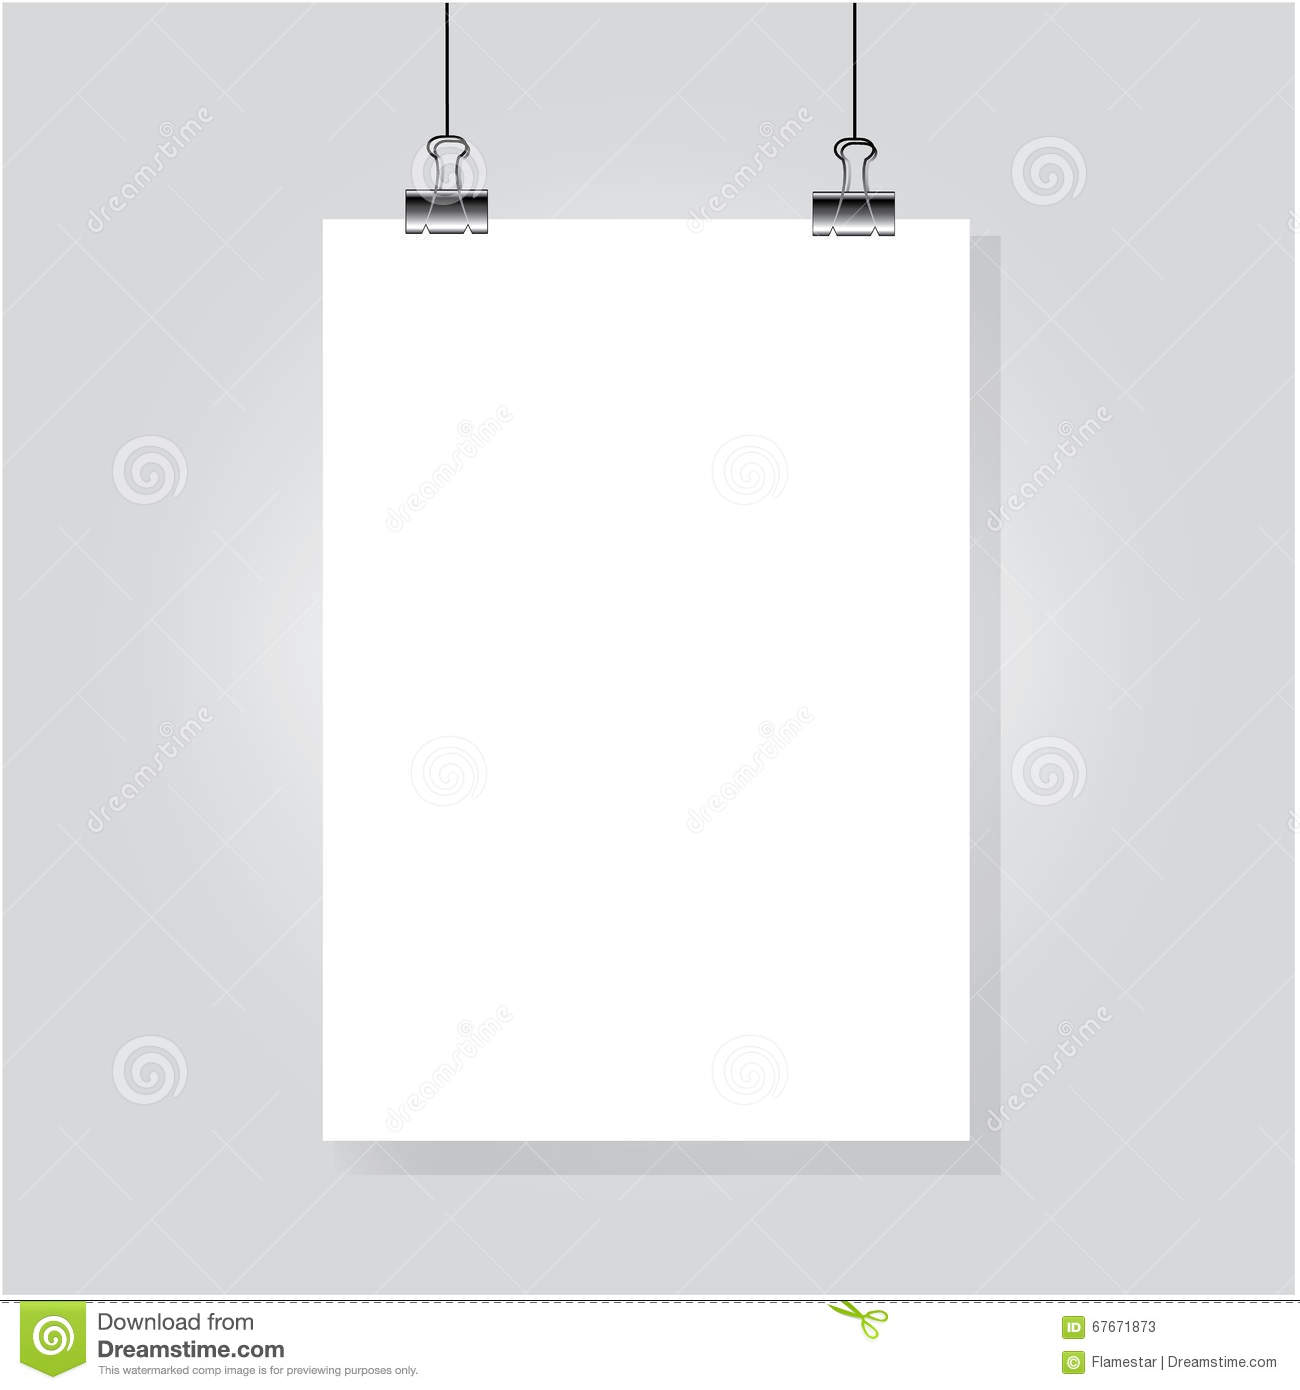 Sheet of paper hanging on the wall stock vector image for Fomic sheet wall hanging